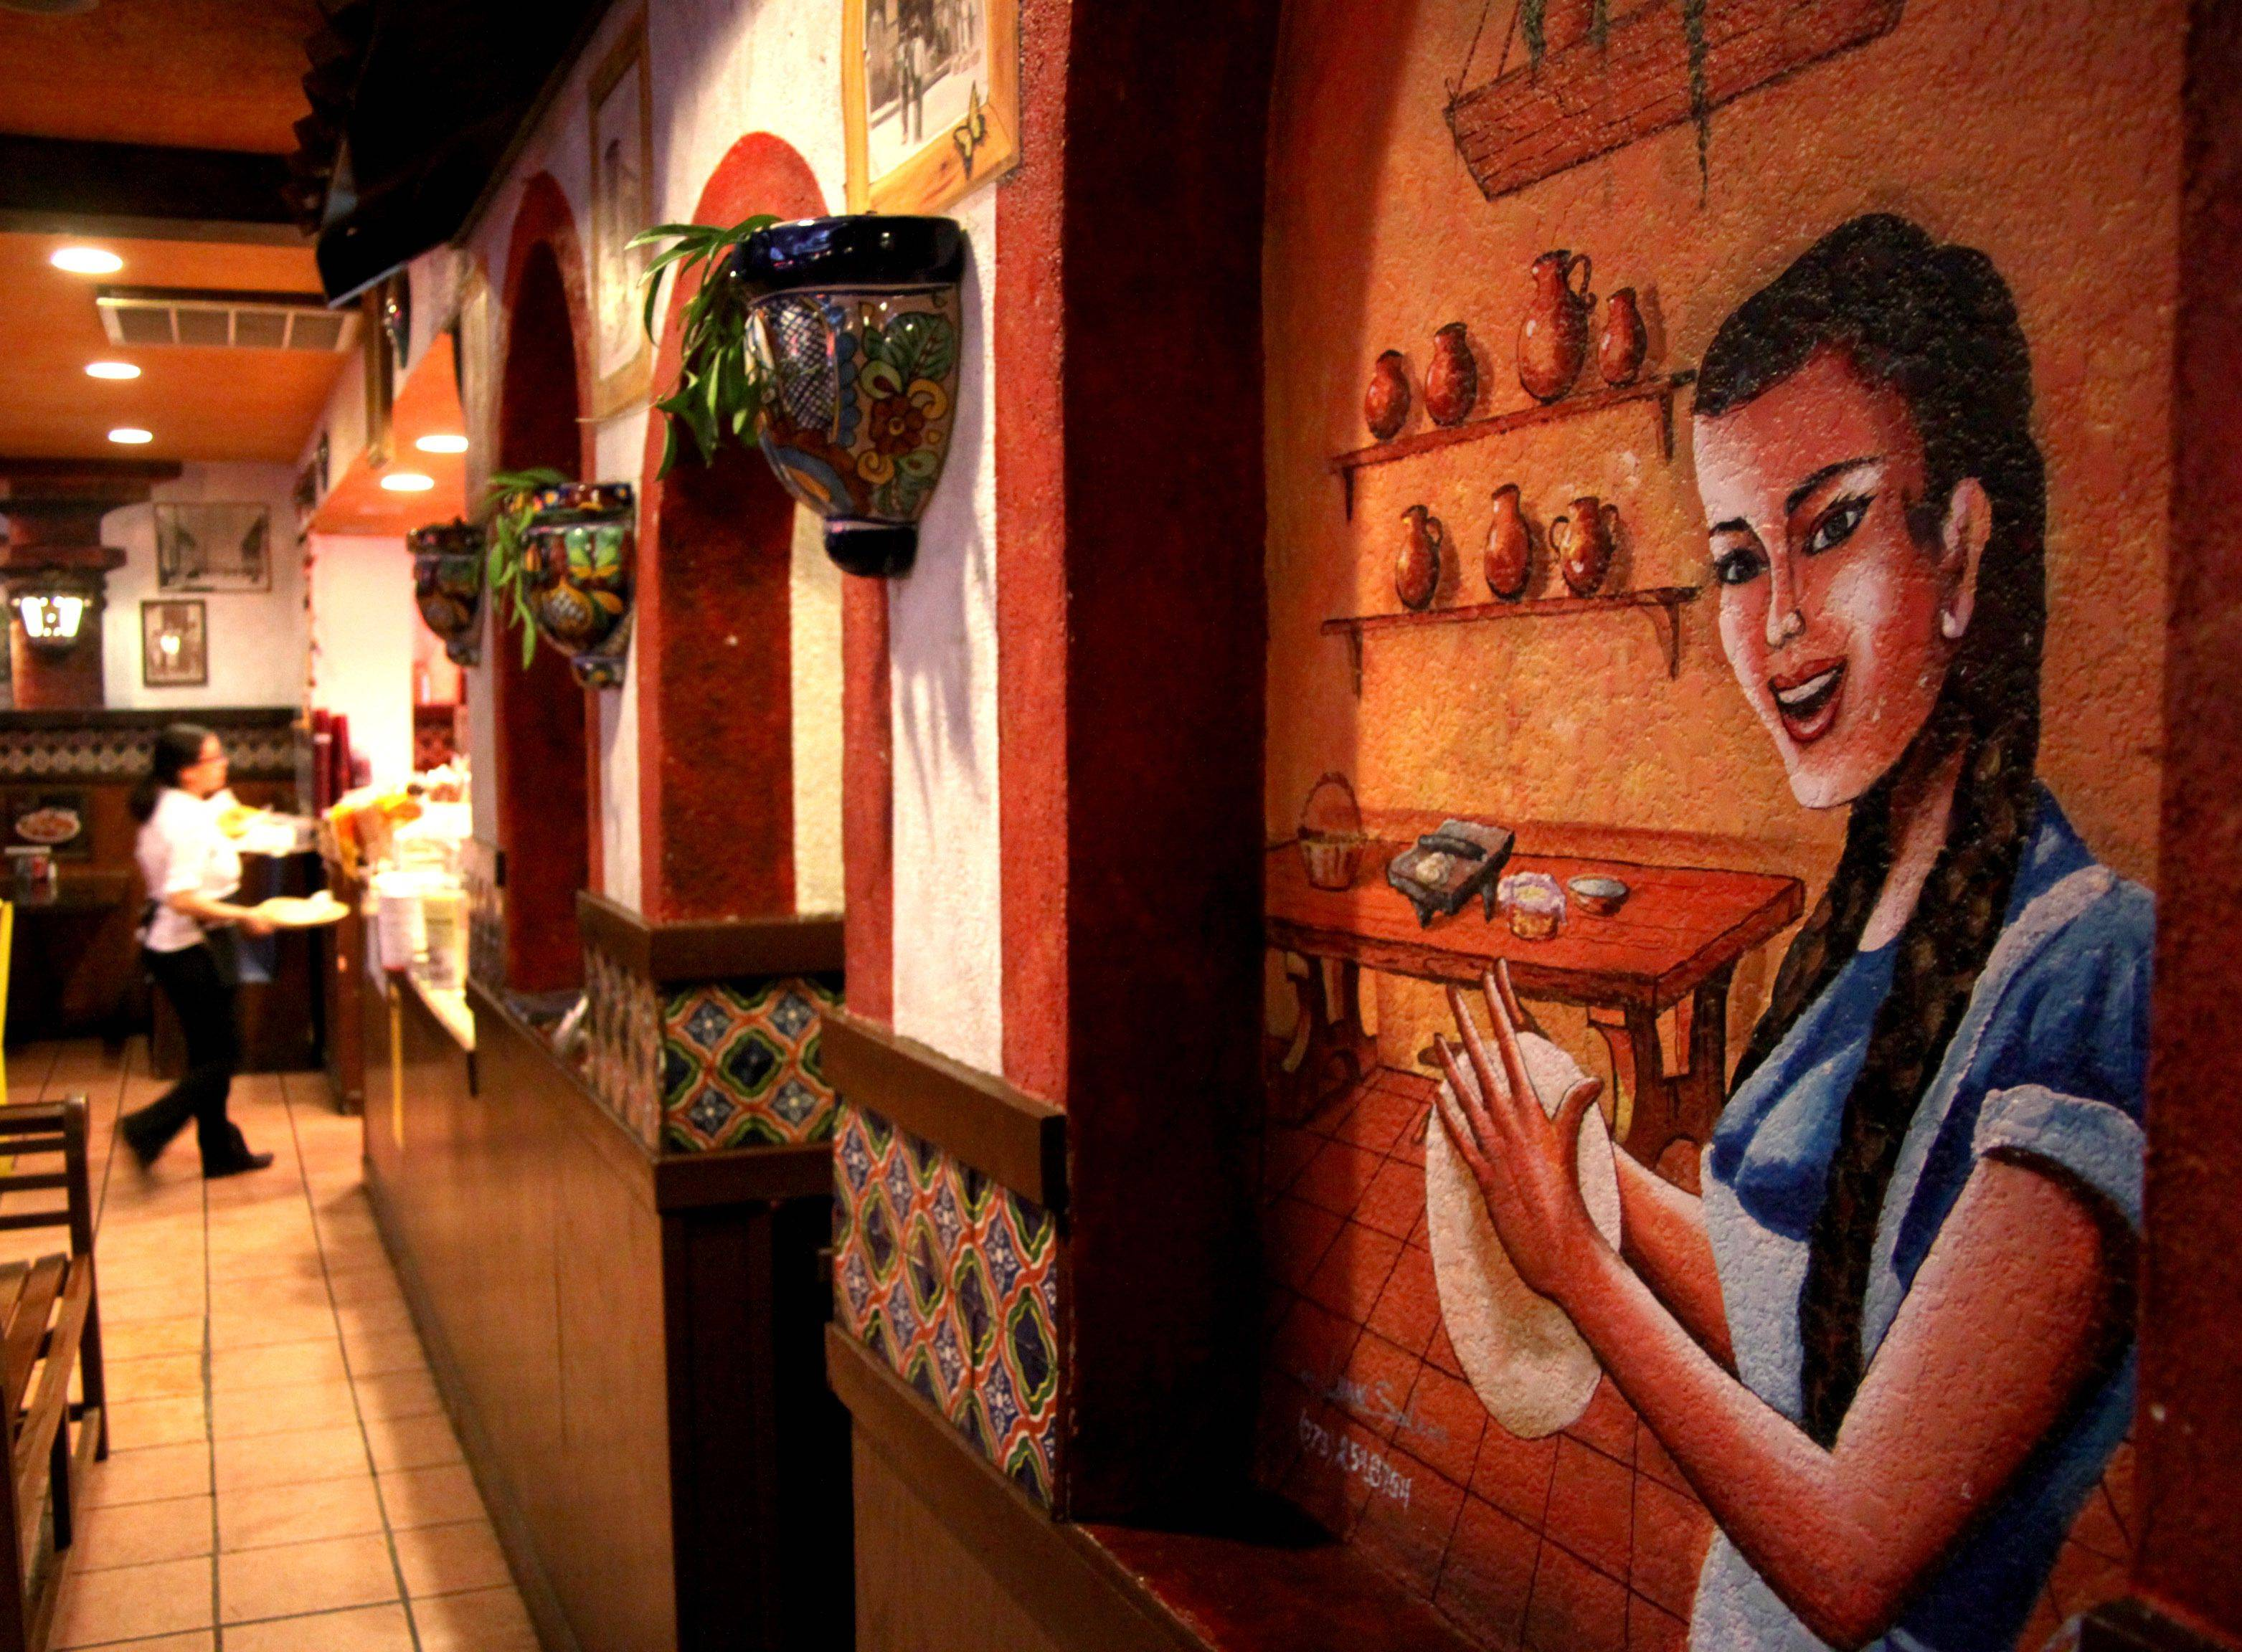 Murals and decor add to the flair at El Faro restaurant in Bartlett .